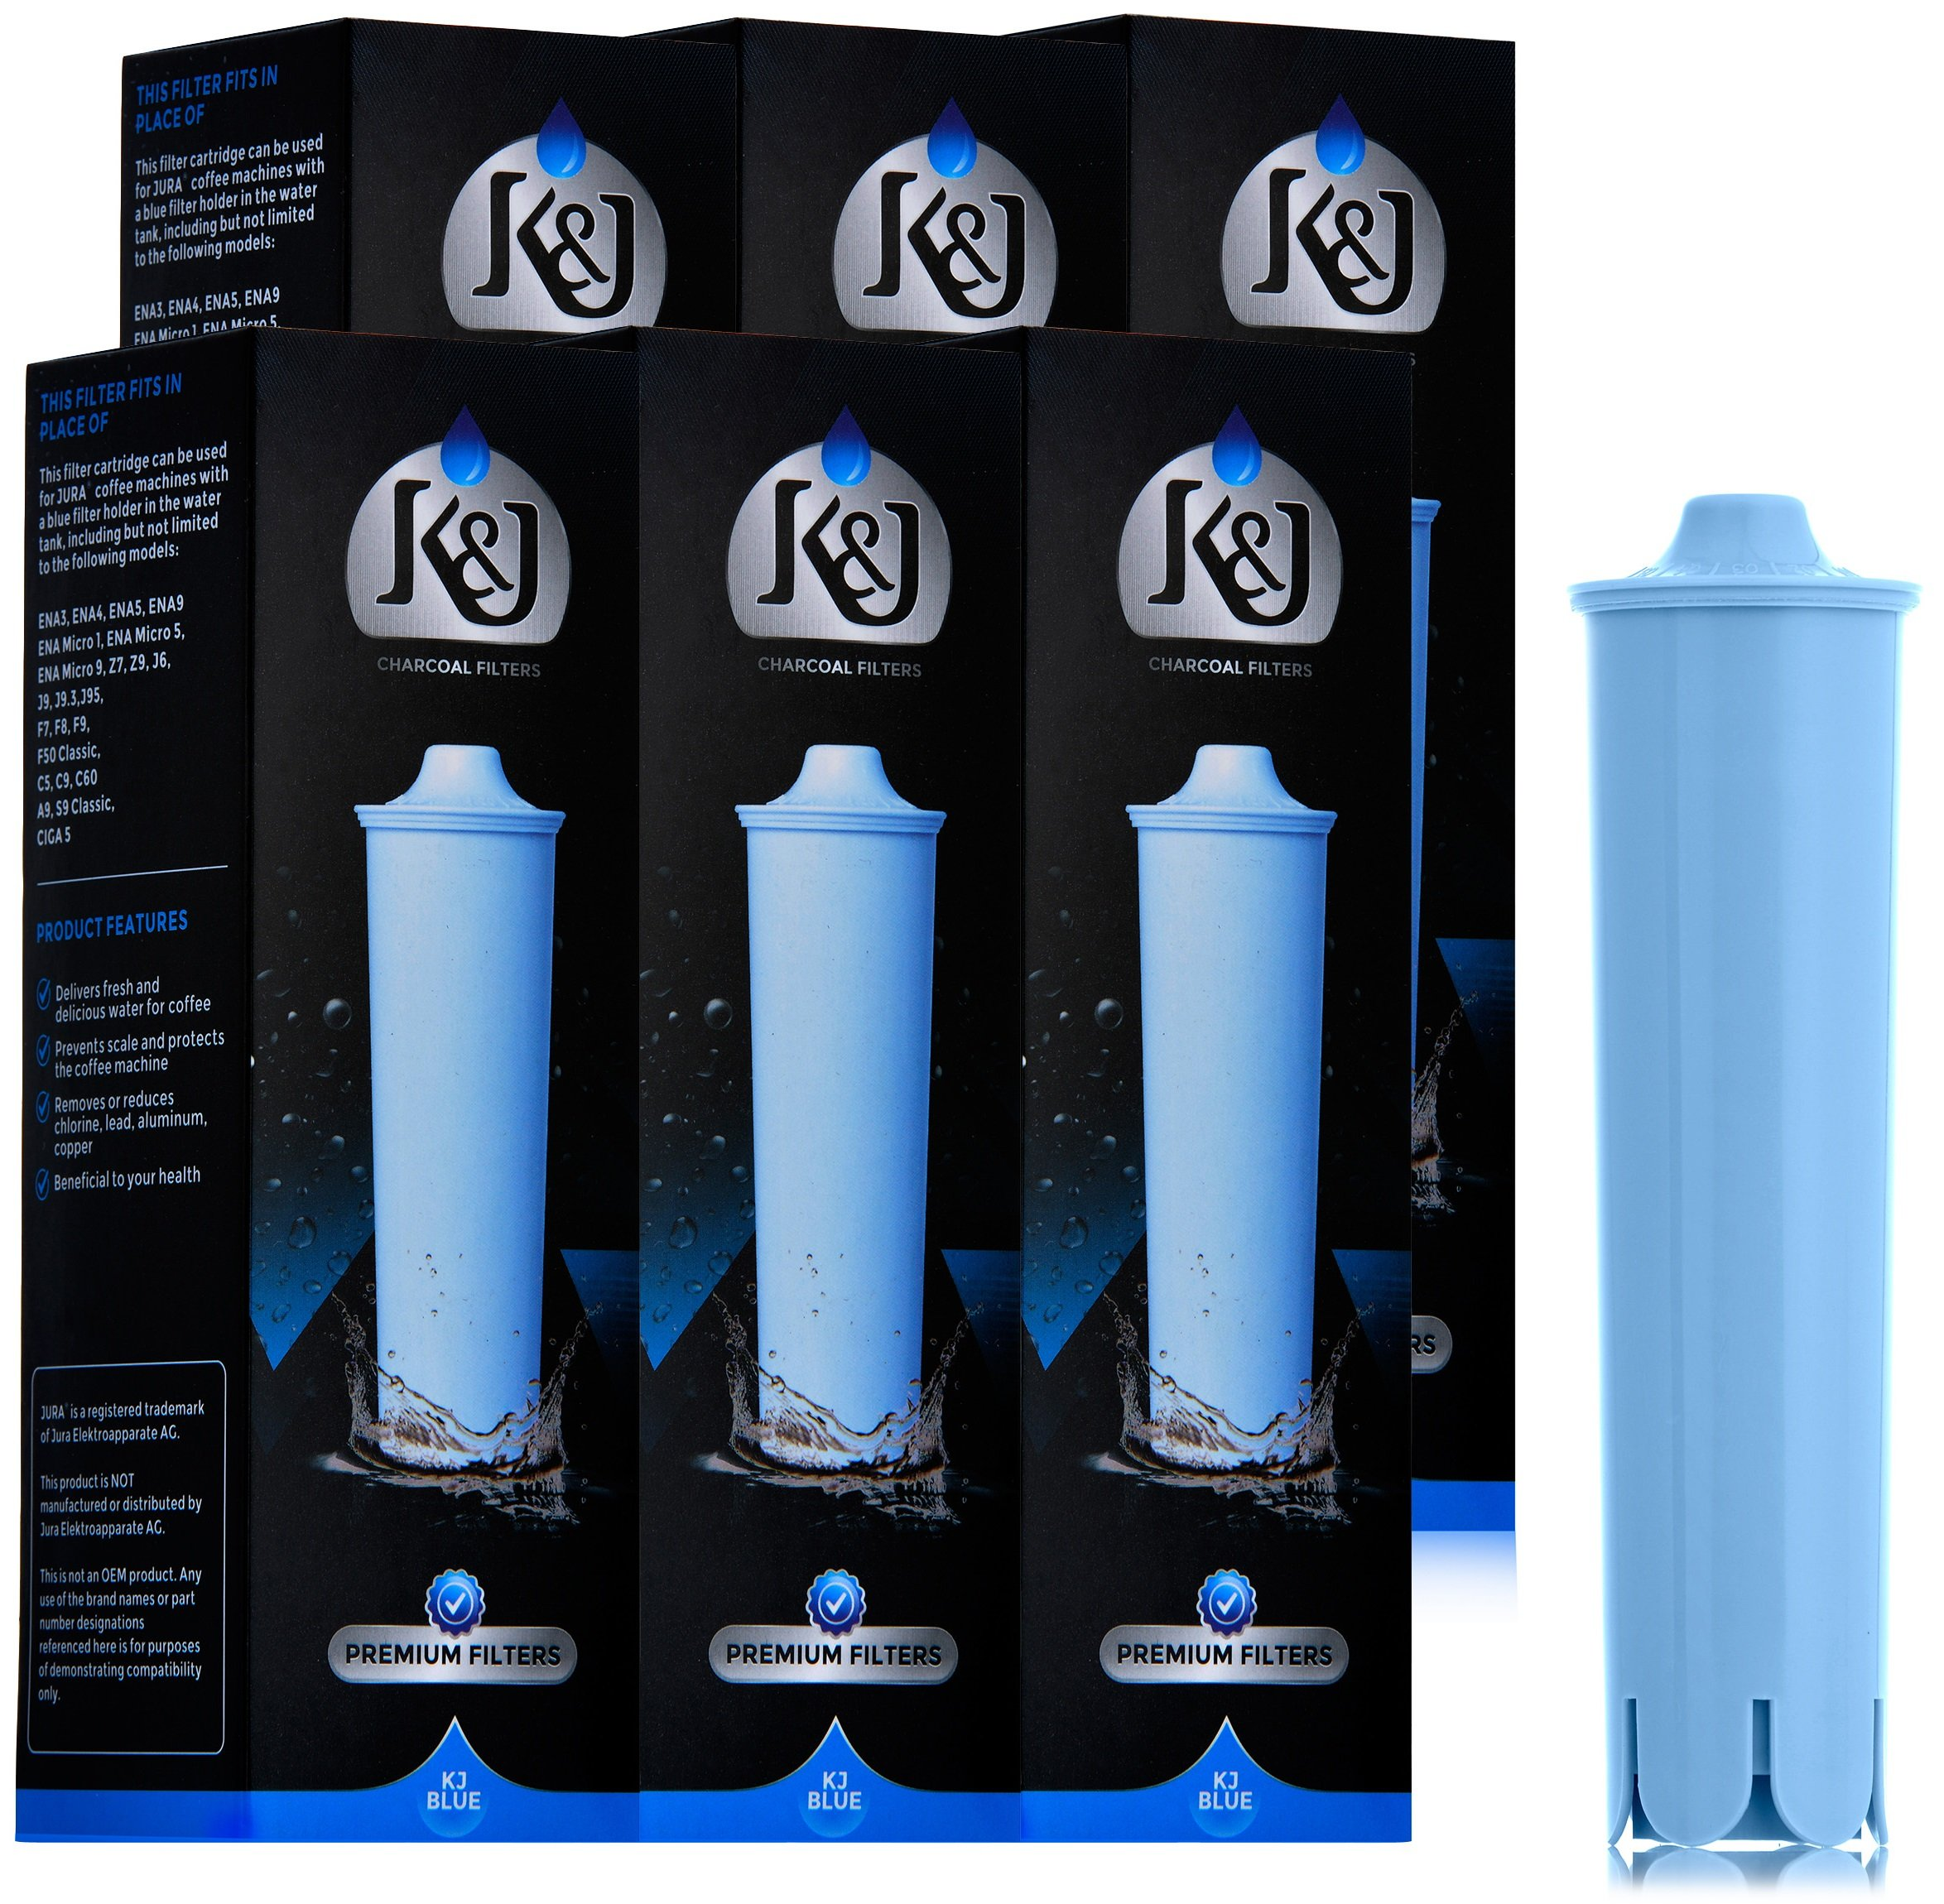 Jura Capresso Clearyl Blue Compatible Water Filters 6-Pack - Replaces Jura Blue Filters by K&J Charcoal Filters